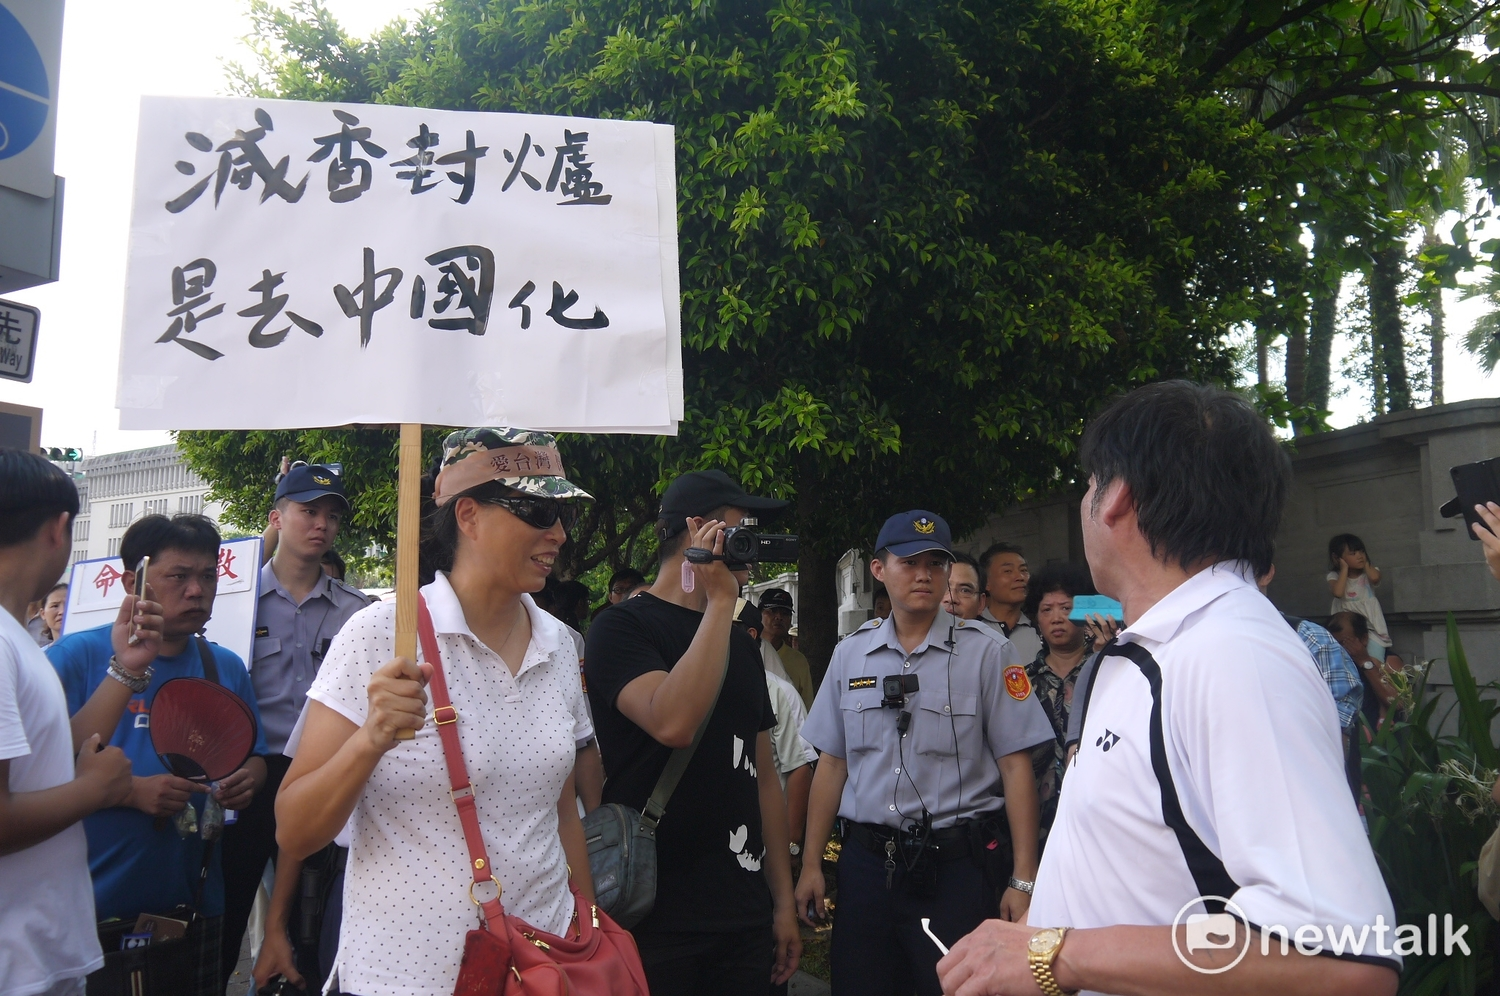 Zhang Xiuye, a member of the Patriotic Union and others, were charged with bribery of voters at dinner in early October. Following Northern Inspection and Continuation, today they are suspected of violating the electoral law and have ordered Zhang to limit their exit, sea and residence. Information photography.